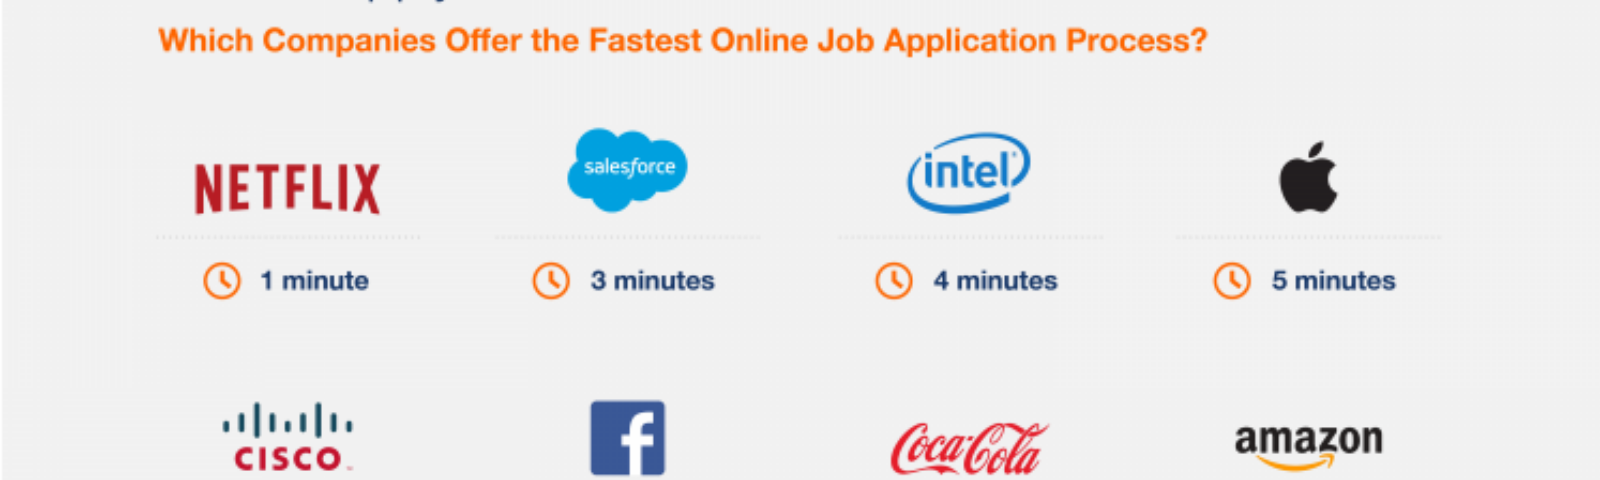 Average time to apply of leading US companies